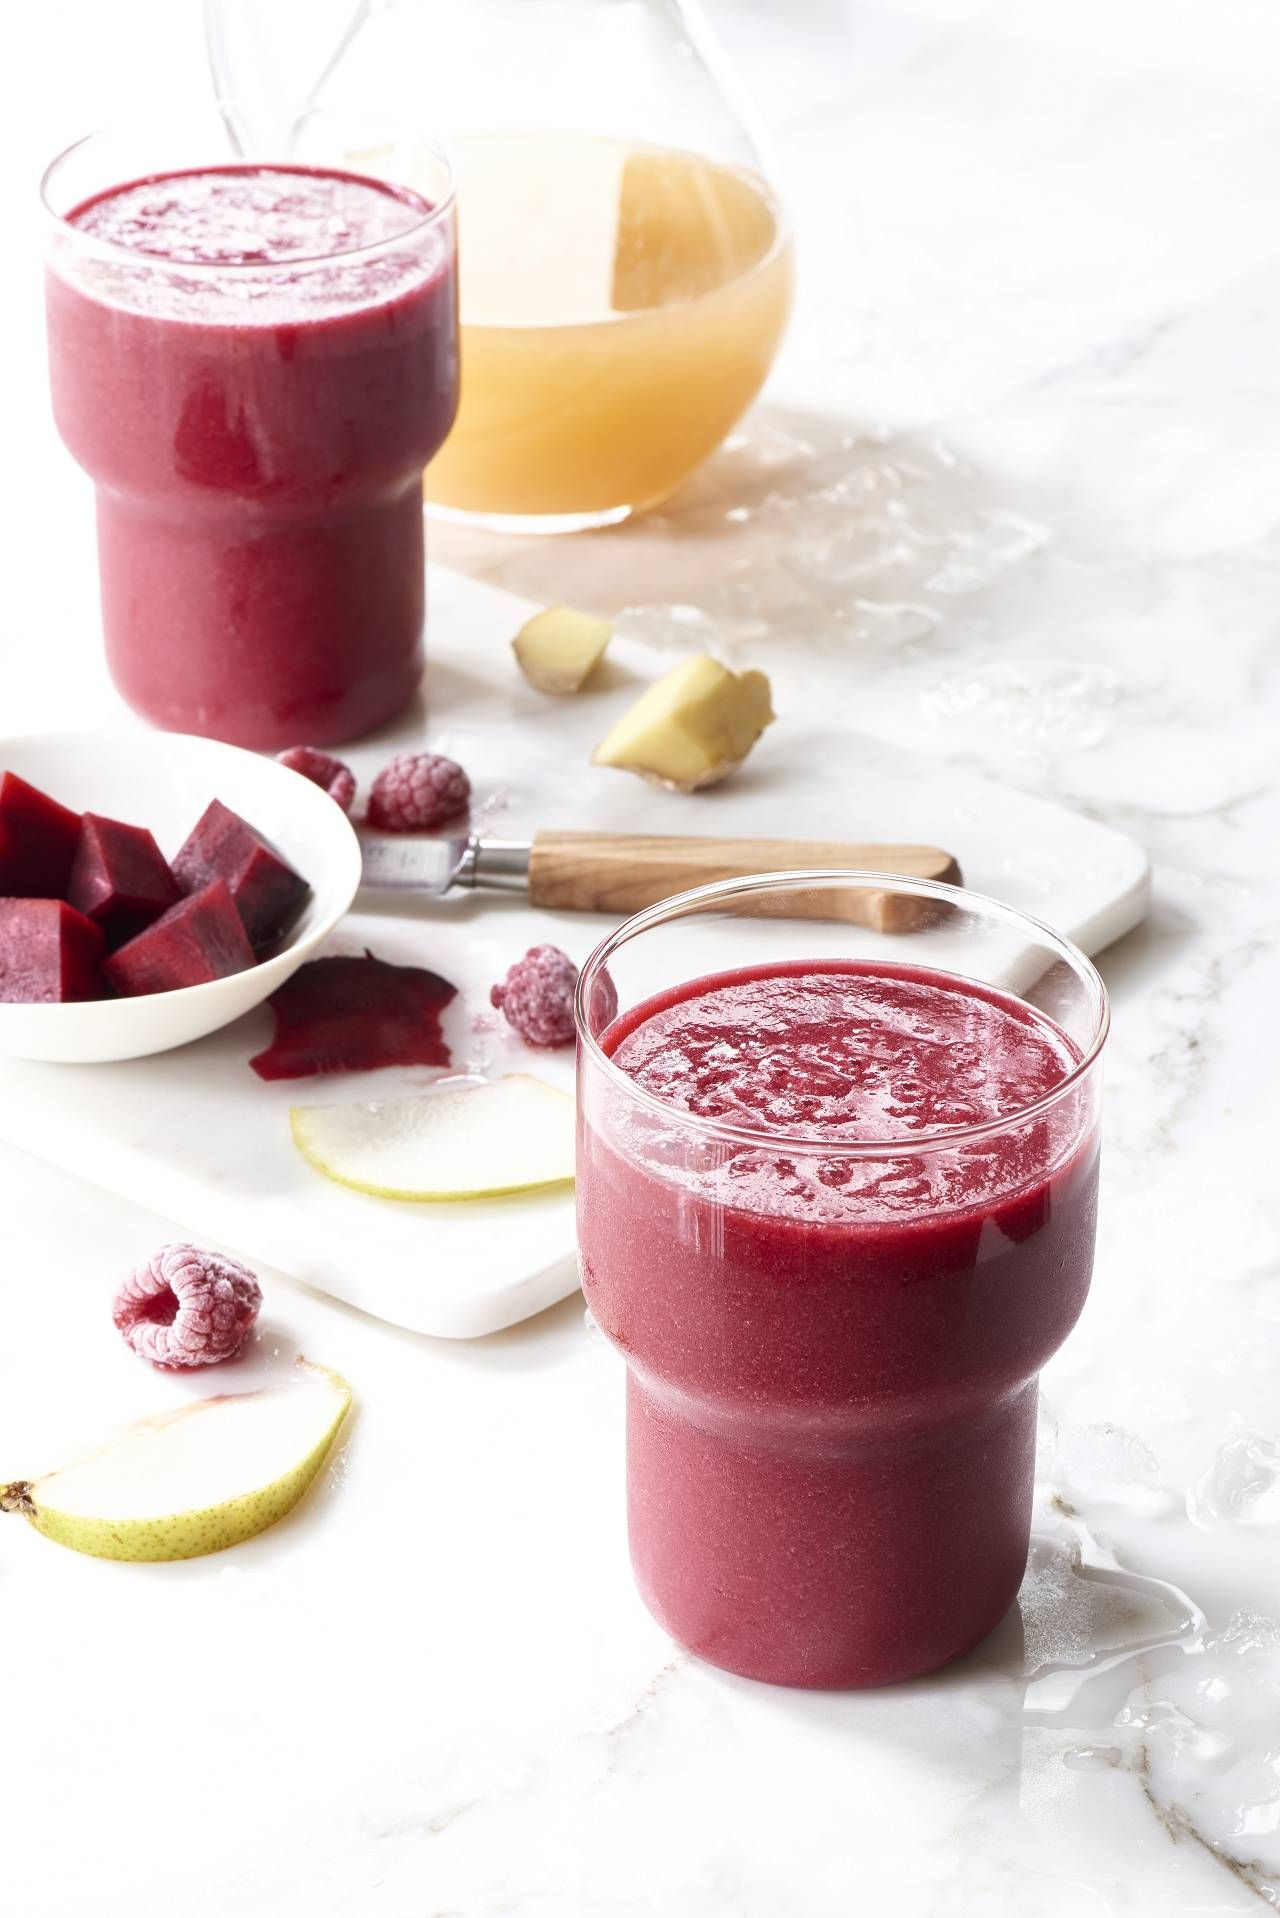 This Vegan Beet Berry Smoothie made with the @kitchenaidusa Pro Line® Series blender is easy, healthy, and delicious. A mix of unfiltered apple juice, pear, raspberries, and ginger to create a blend that is sweet and refreshing, and has a gorgeous pink color.